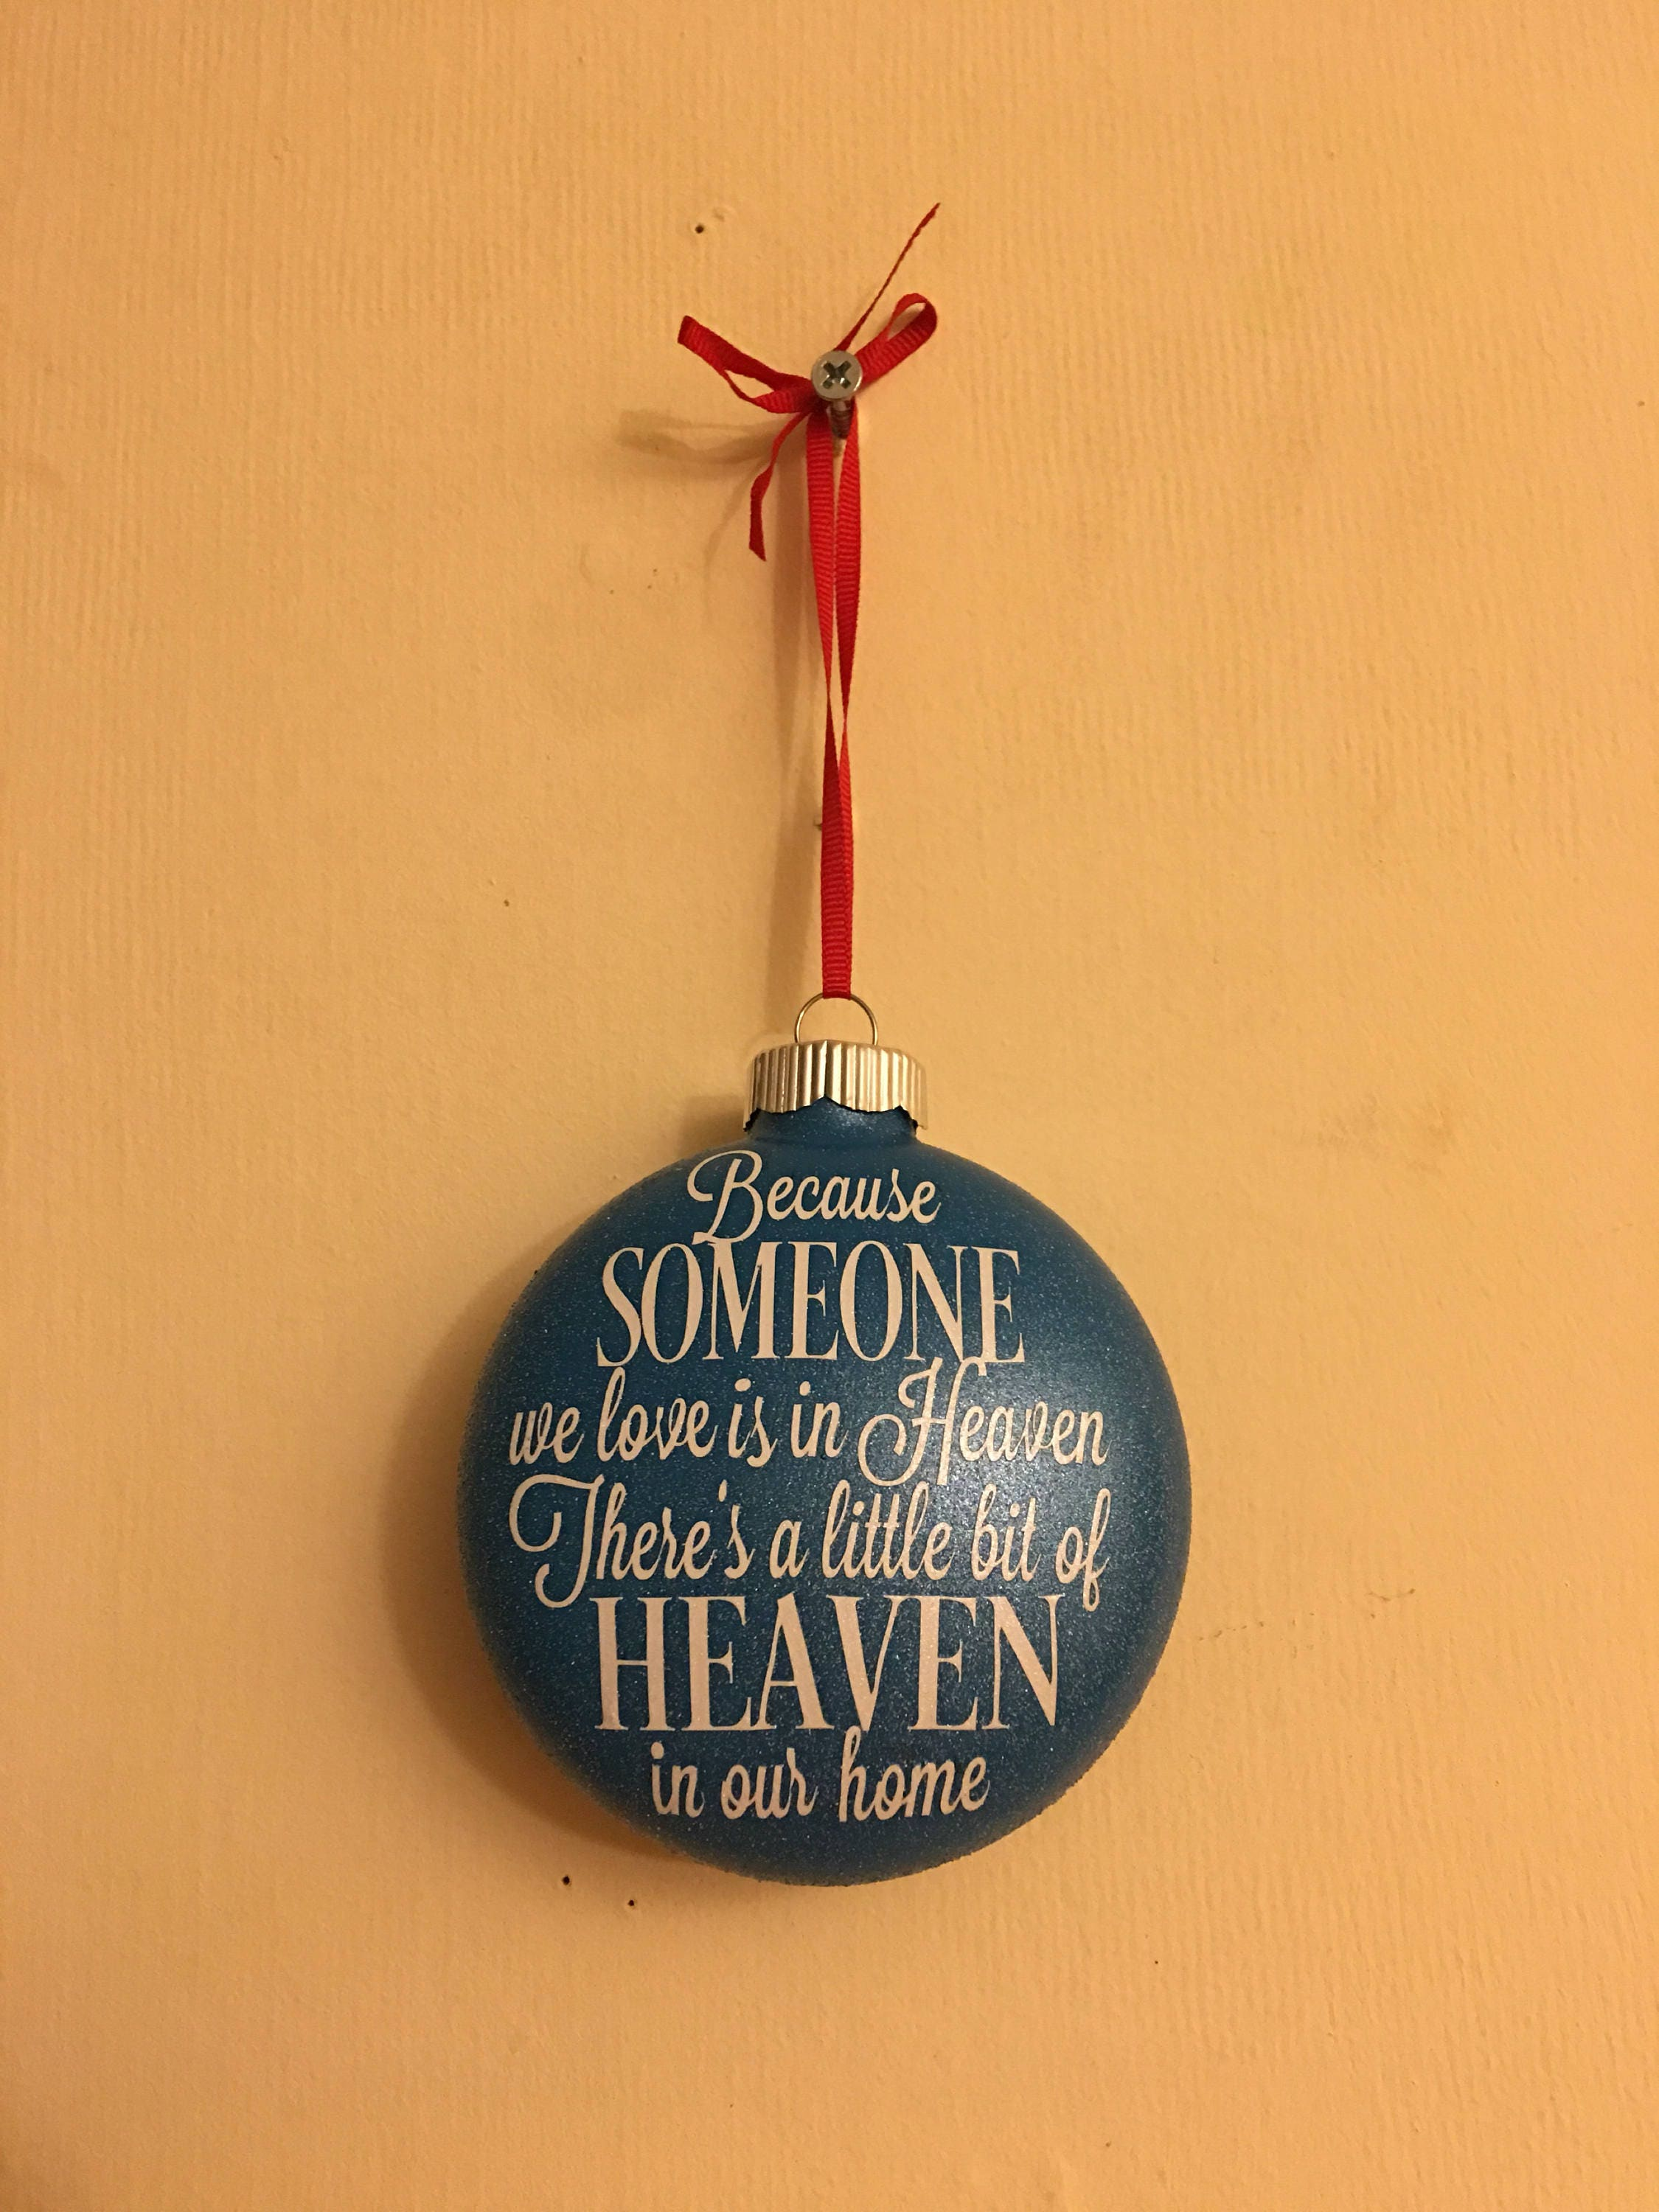 Christmas Ornaments For Lost Loved Ones Part - 32: Details. Ornament To Hang On Your Christmas Tree In Honor Of A Lost Loved  One.